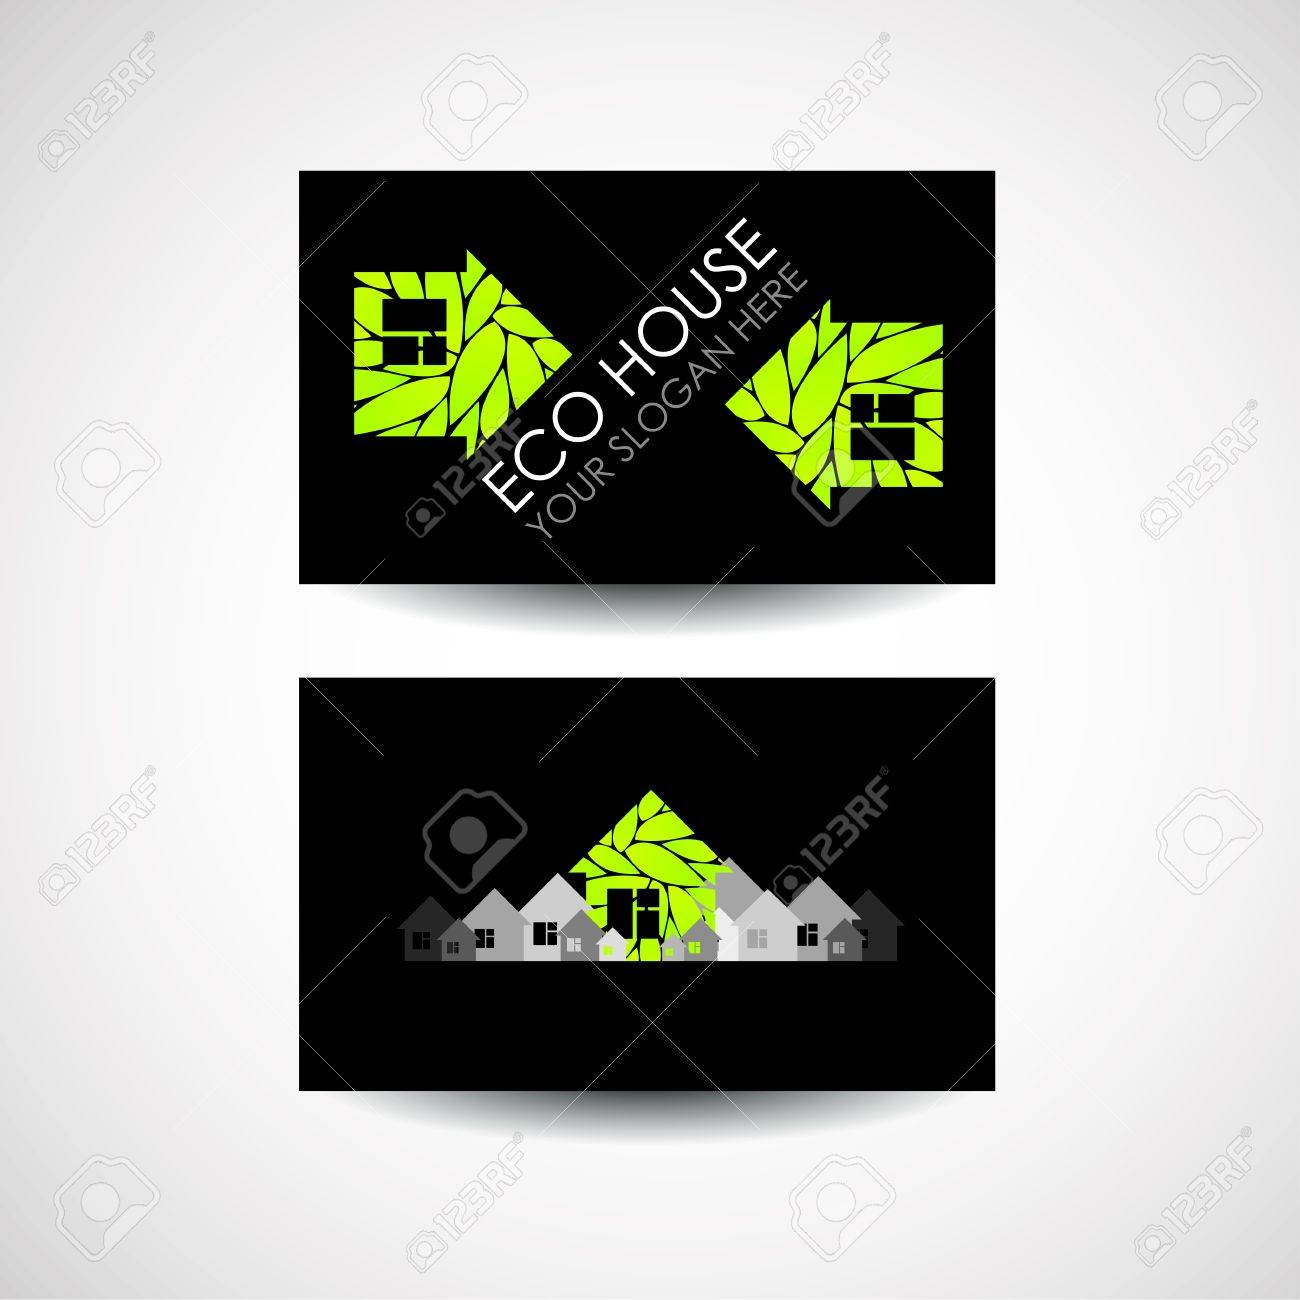 Eco house logo and business card design ecological construction eco house logo and business card design ecological construction eco architecture eco house colourmoves